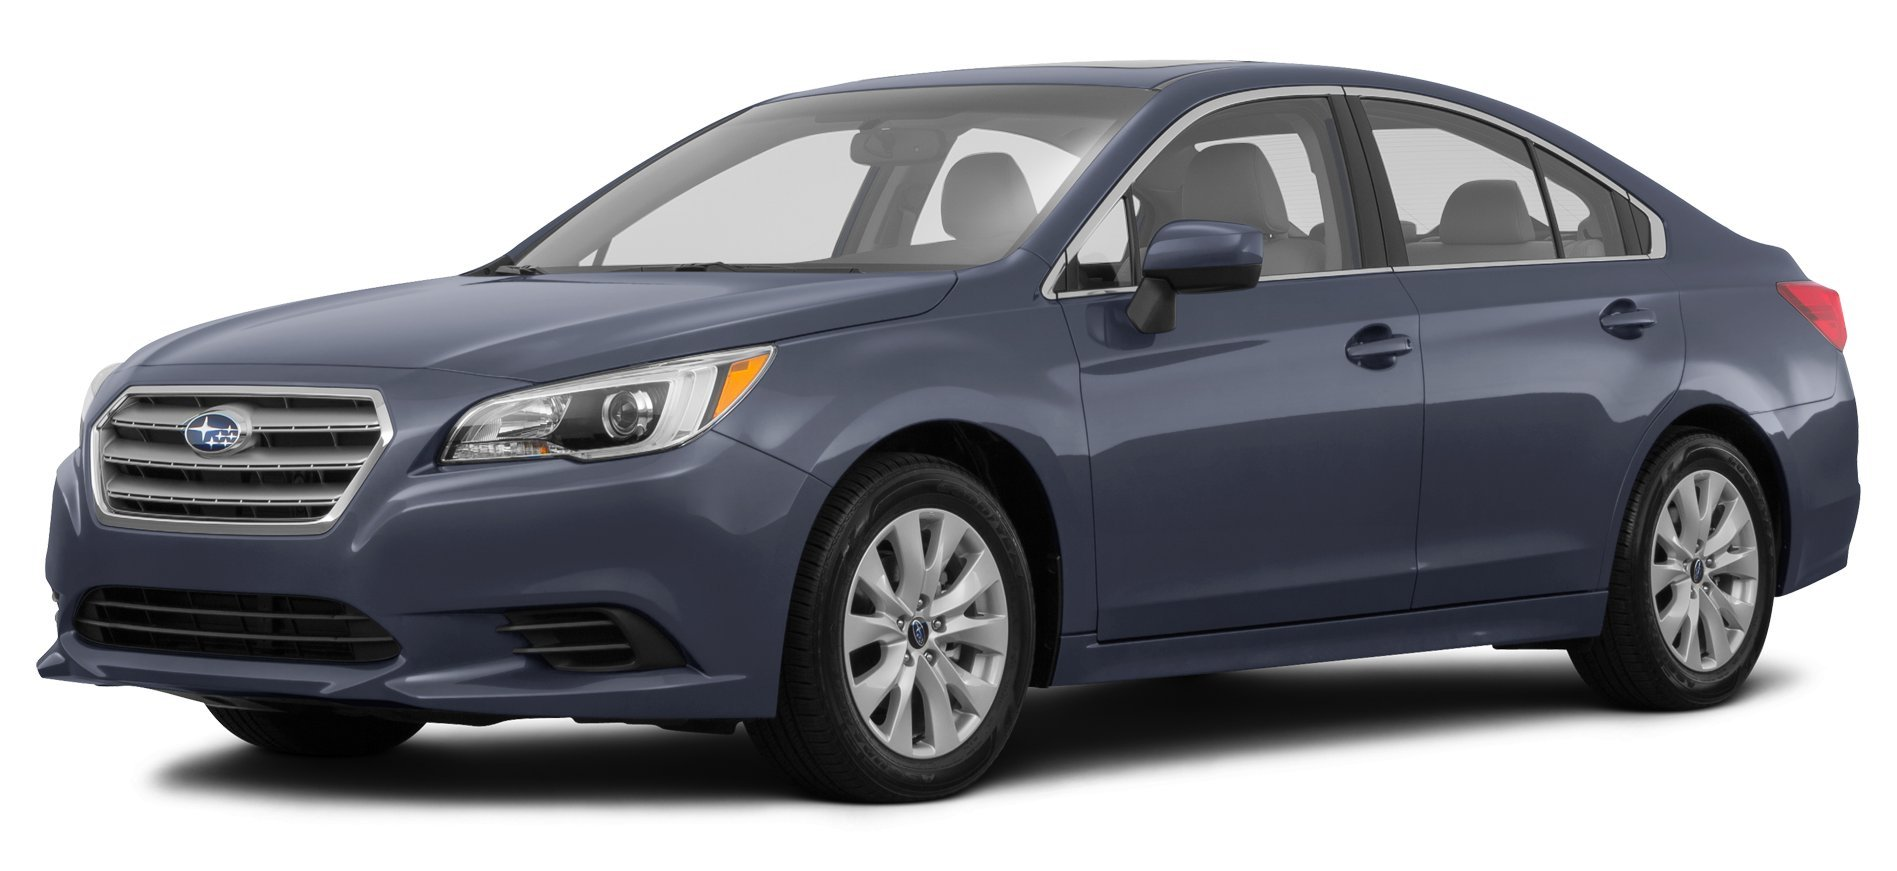 2017 subaru legacy reviews images and specs. Black Bedroom Furniture Sets. Home Design Ideas